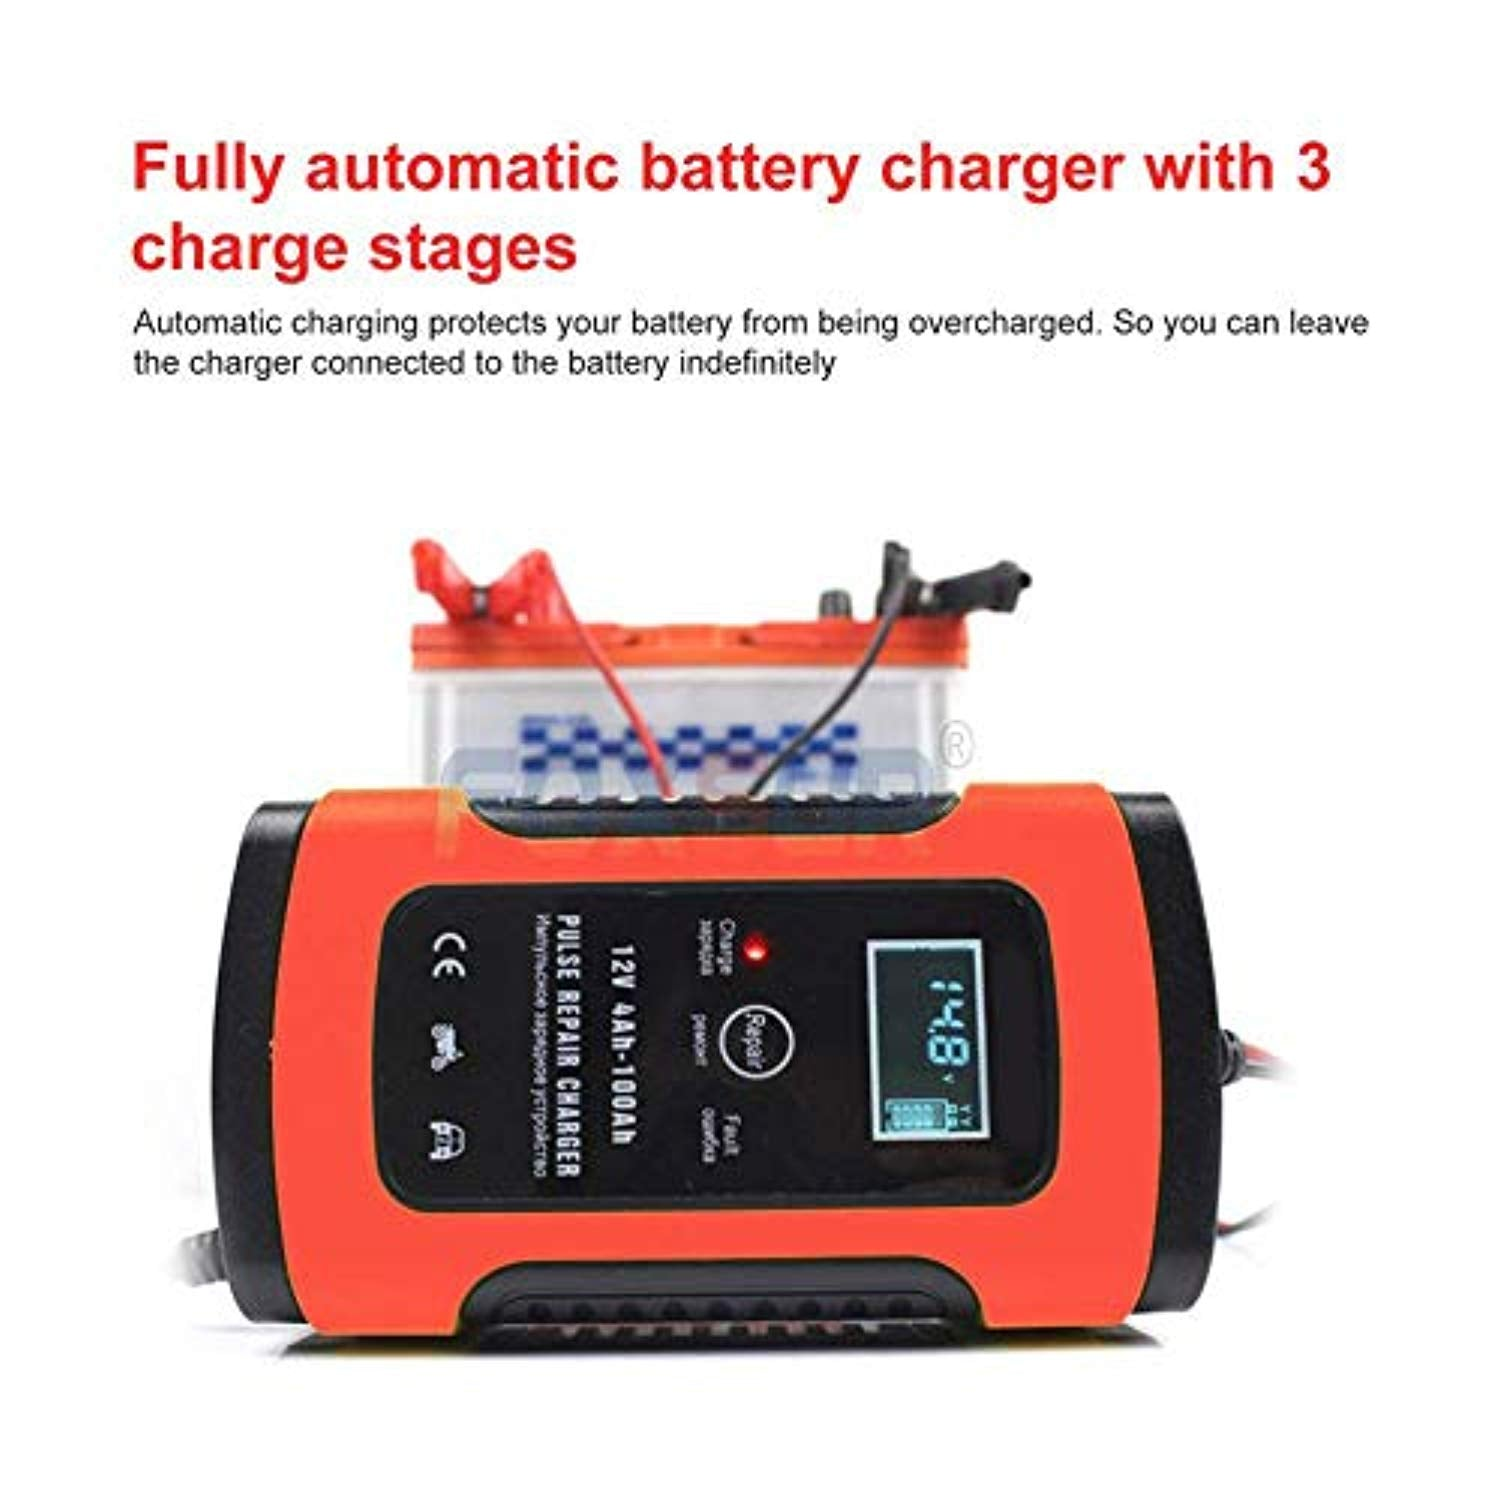 YTBLF Motorcycle UPS Battery Charger, 12V car Smart Battery Charger, Pulse Repair Charger with LCD Display for car, Motorcycle Battery